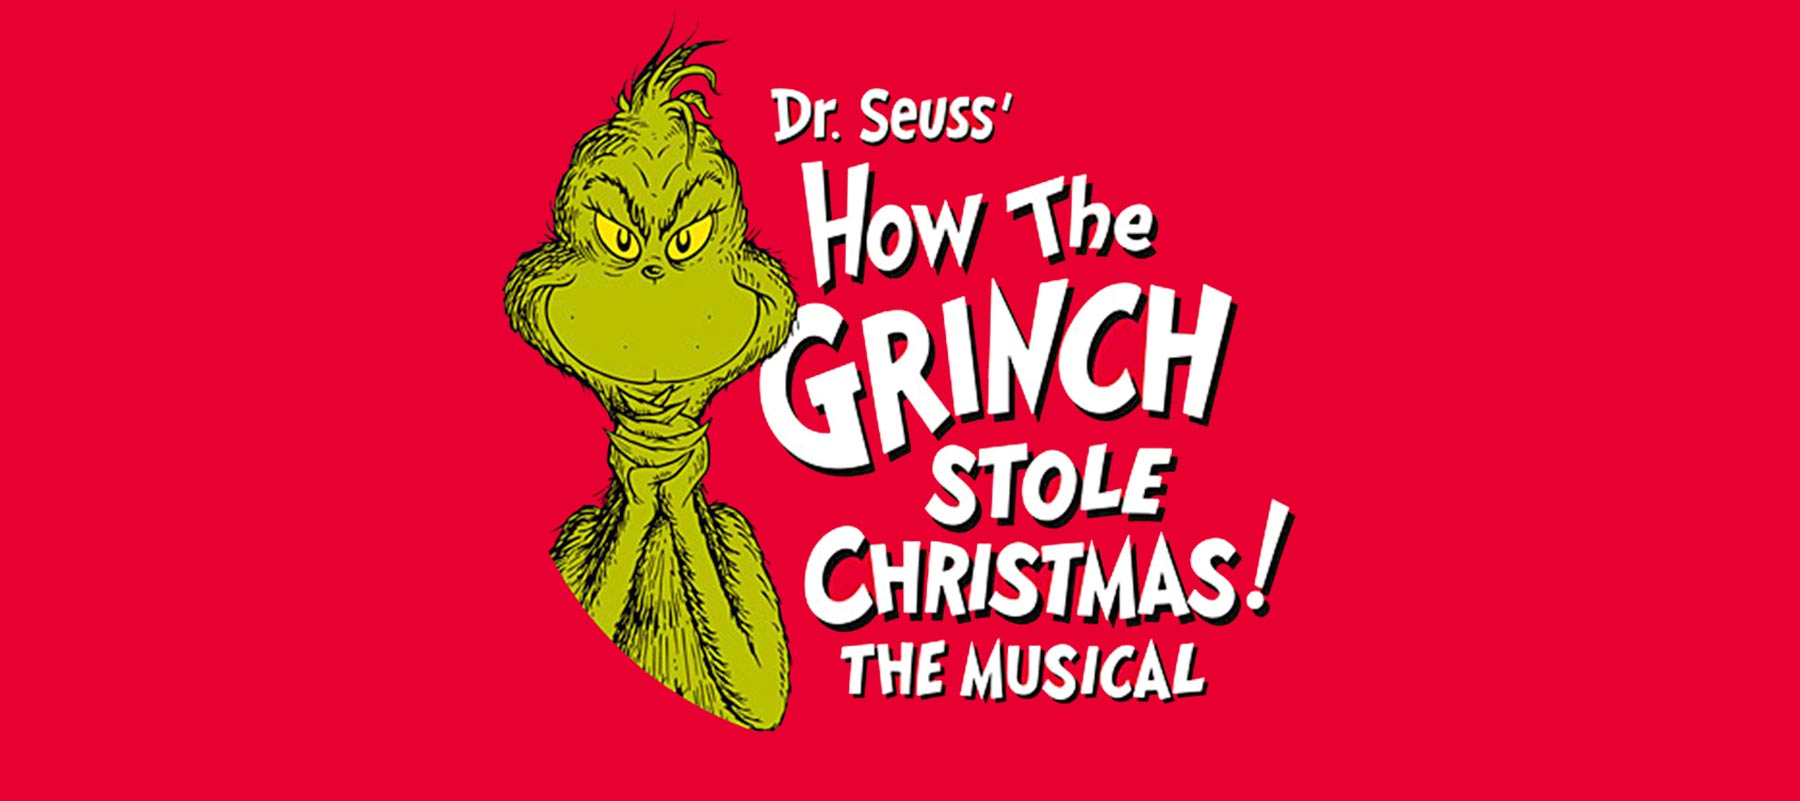 How The Grinch Stole Christmas Musical.How The Grinch Stole Christmas Blp Big League Production